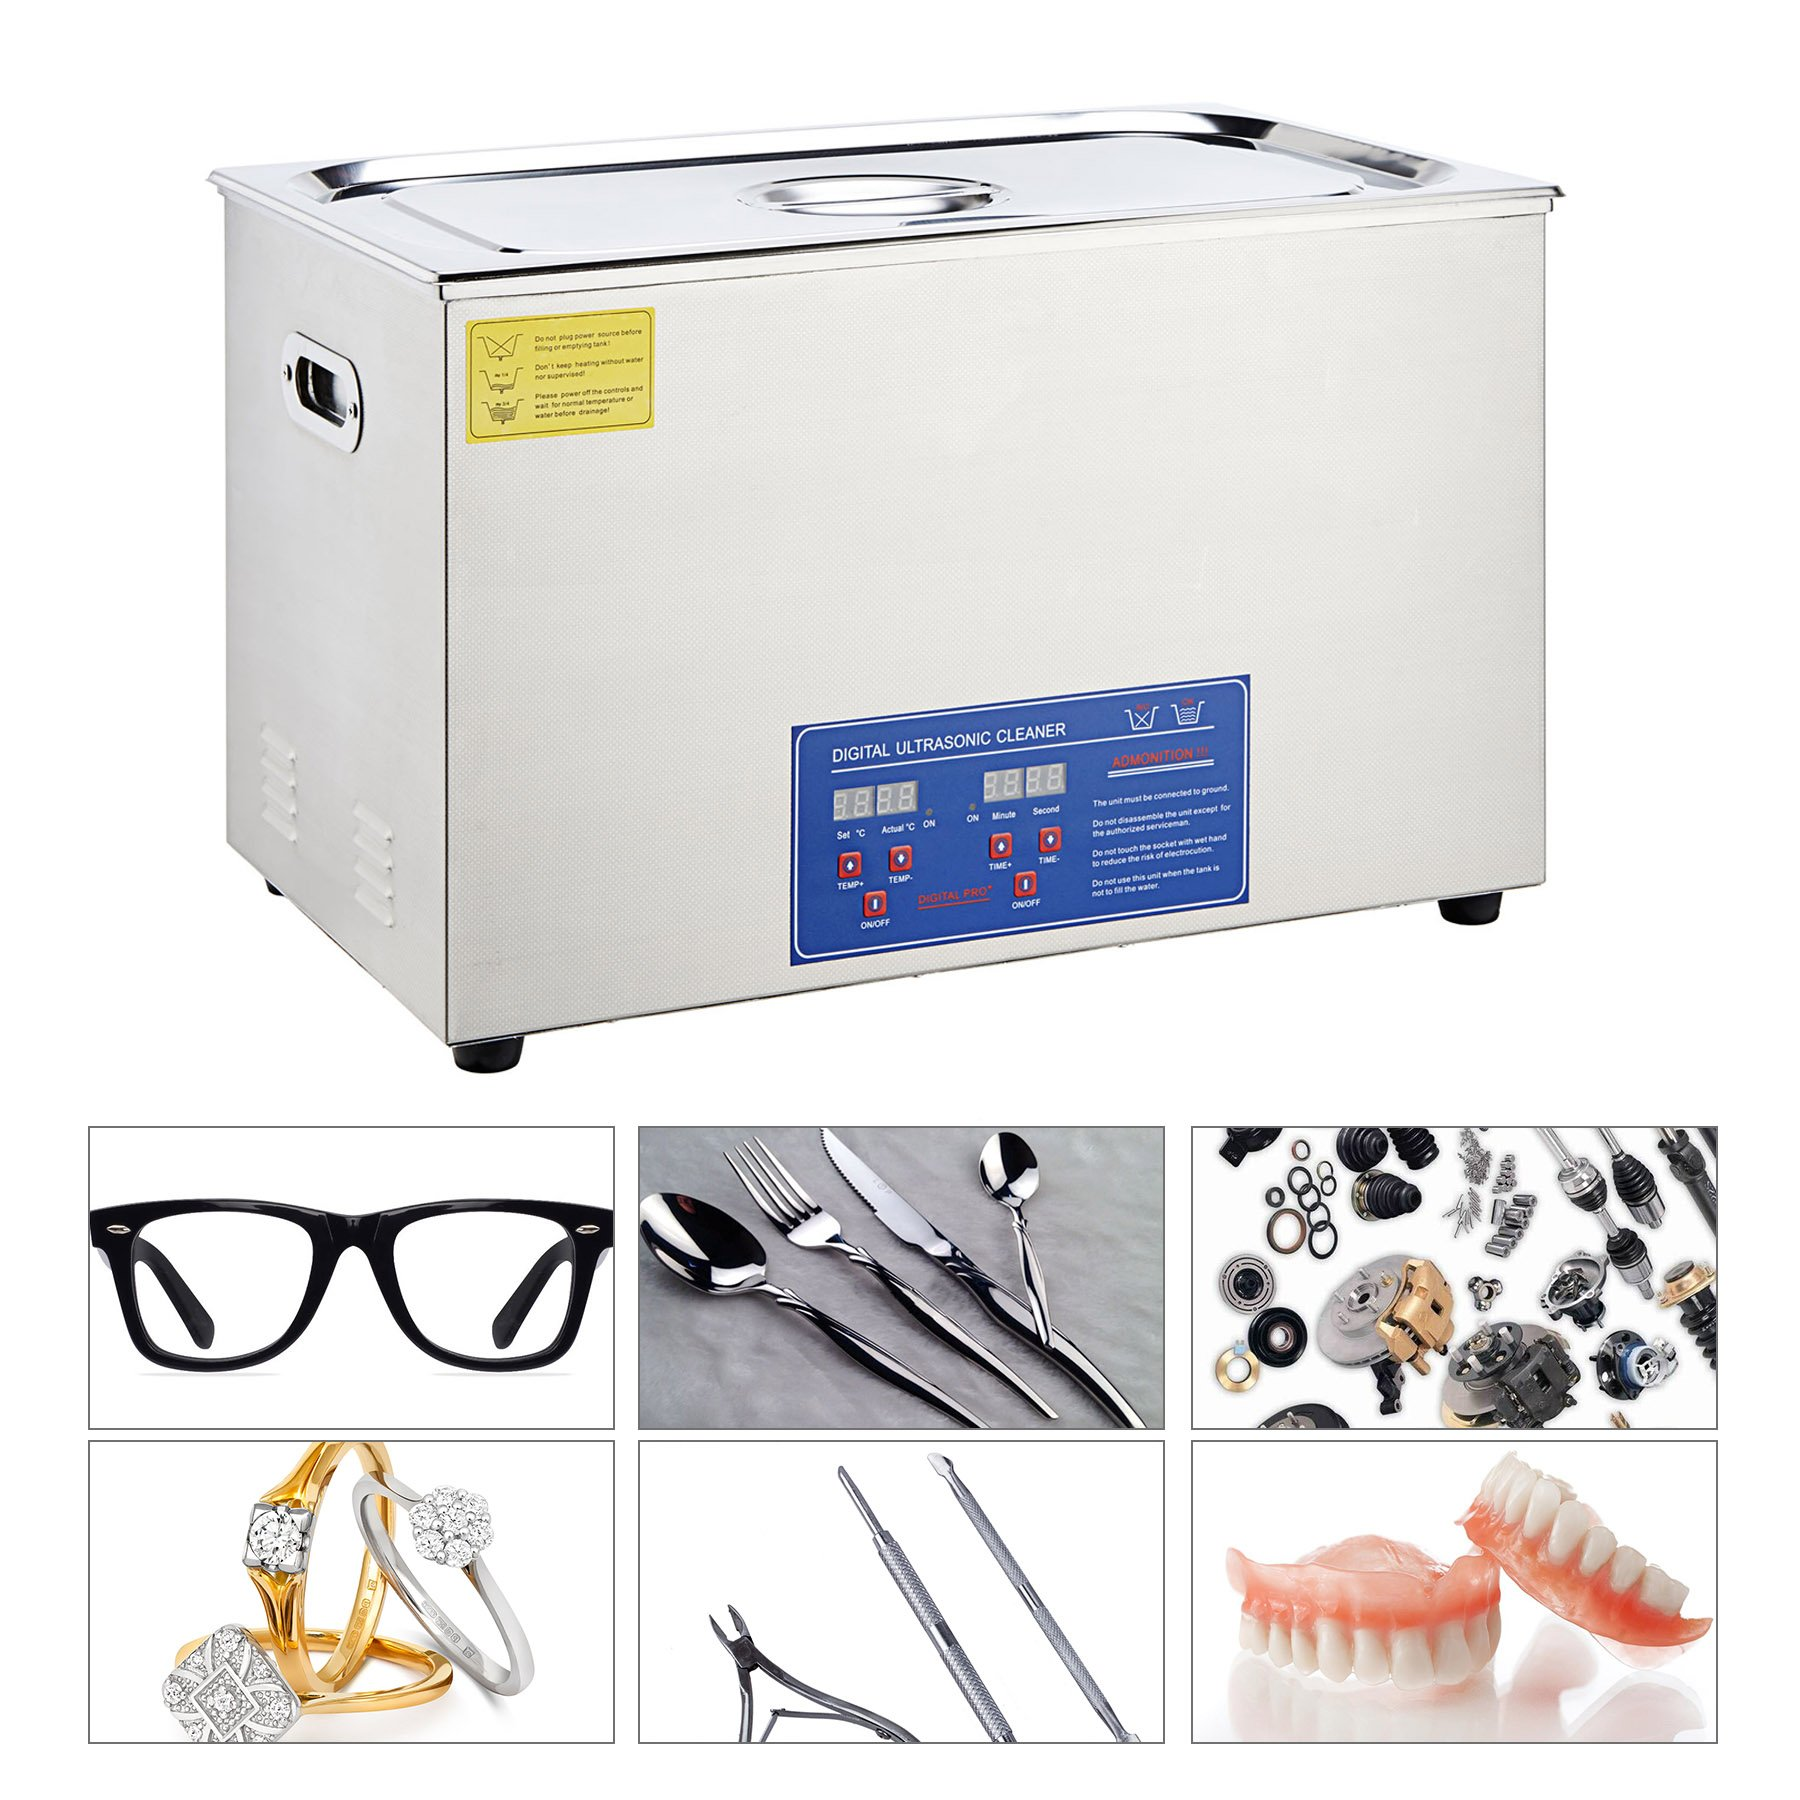 Tek Motion 30L Digital Professional Large Ultrasonic Jewelry Cleaning Machine Cleaner with Heater, Timer (1400 W, 10x60 W Transducers)